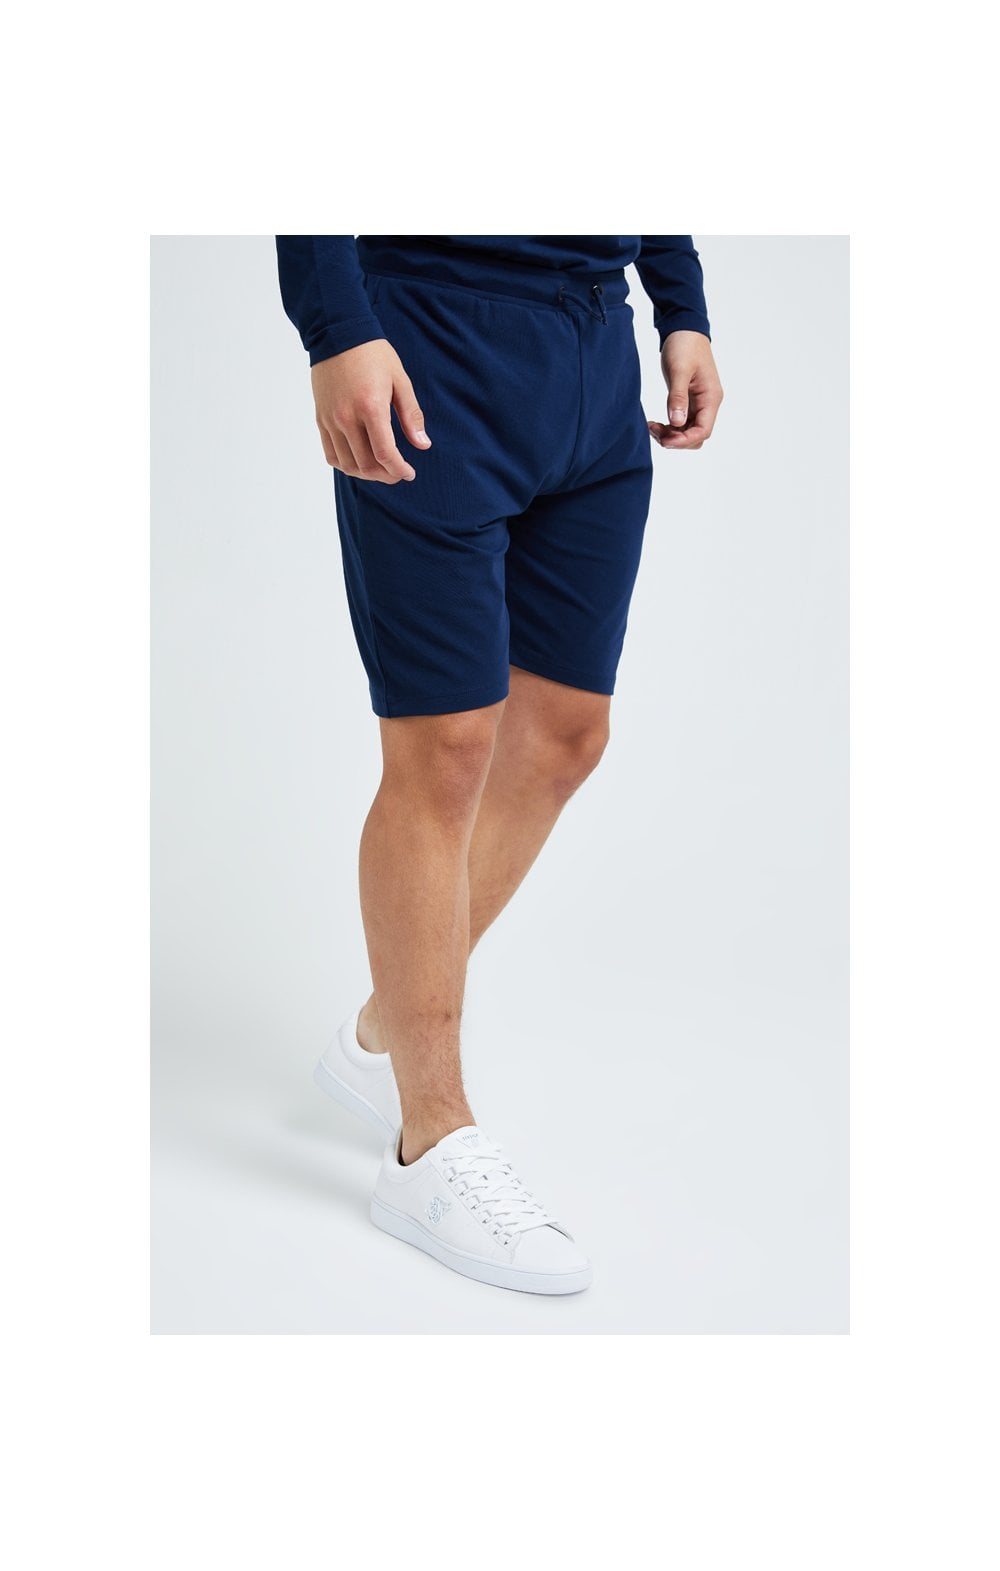 Illusive London Core Jersey Shorts - Navy (2)